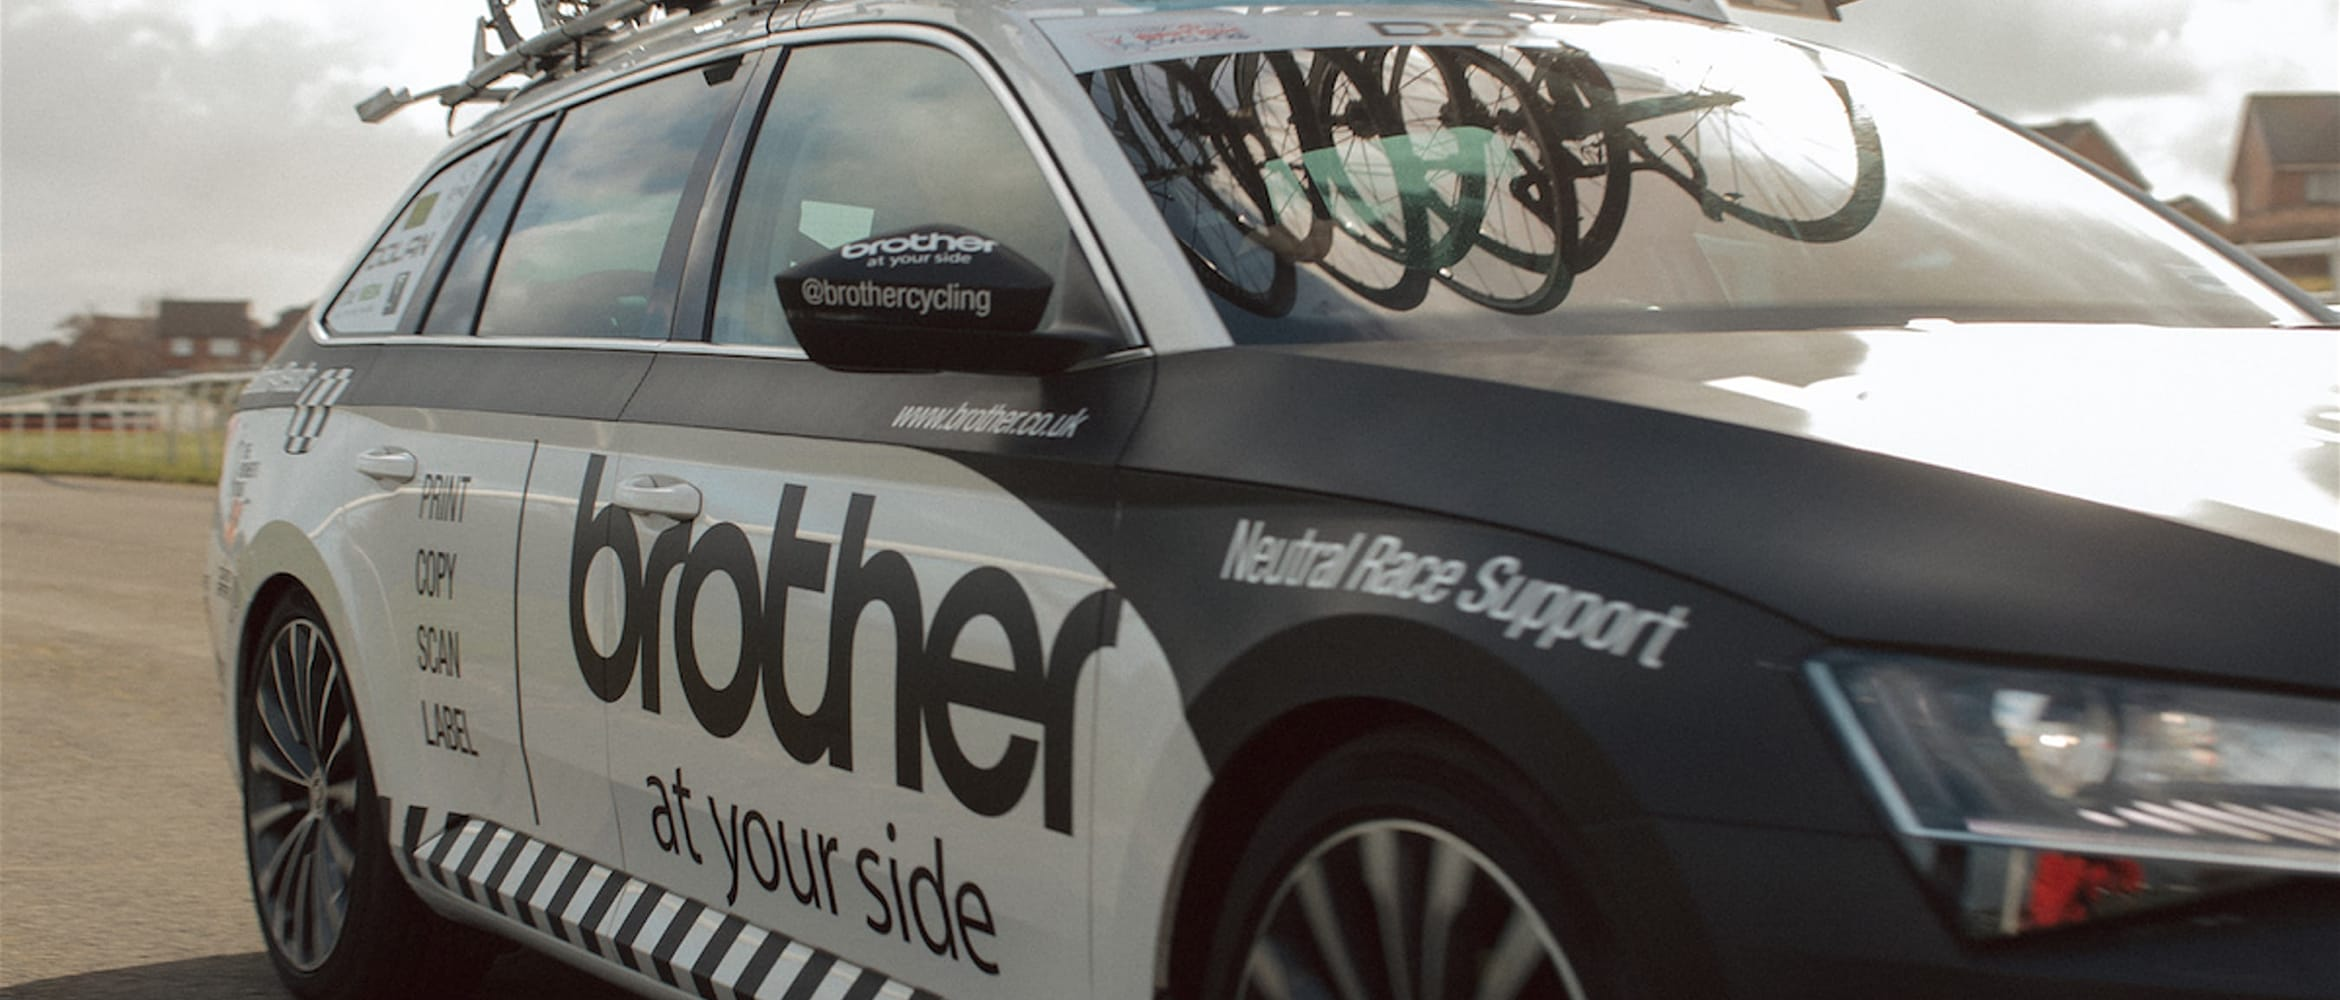 Side view of Neutral Service race support vehicle showing Brother At Your Side livery